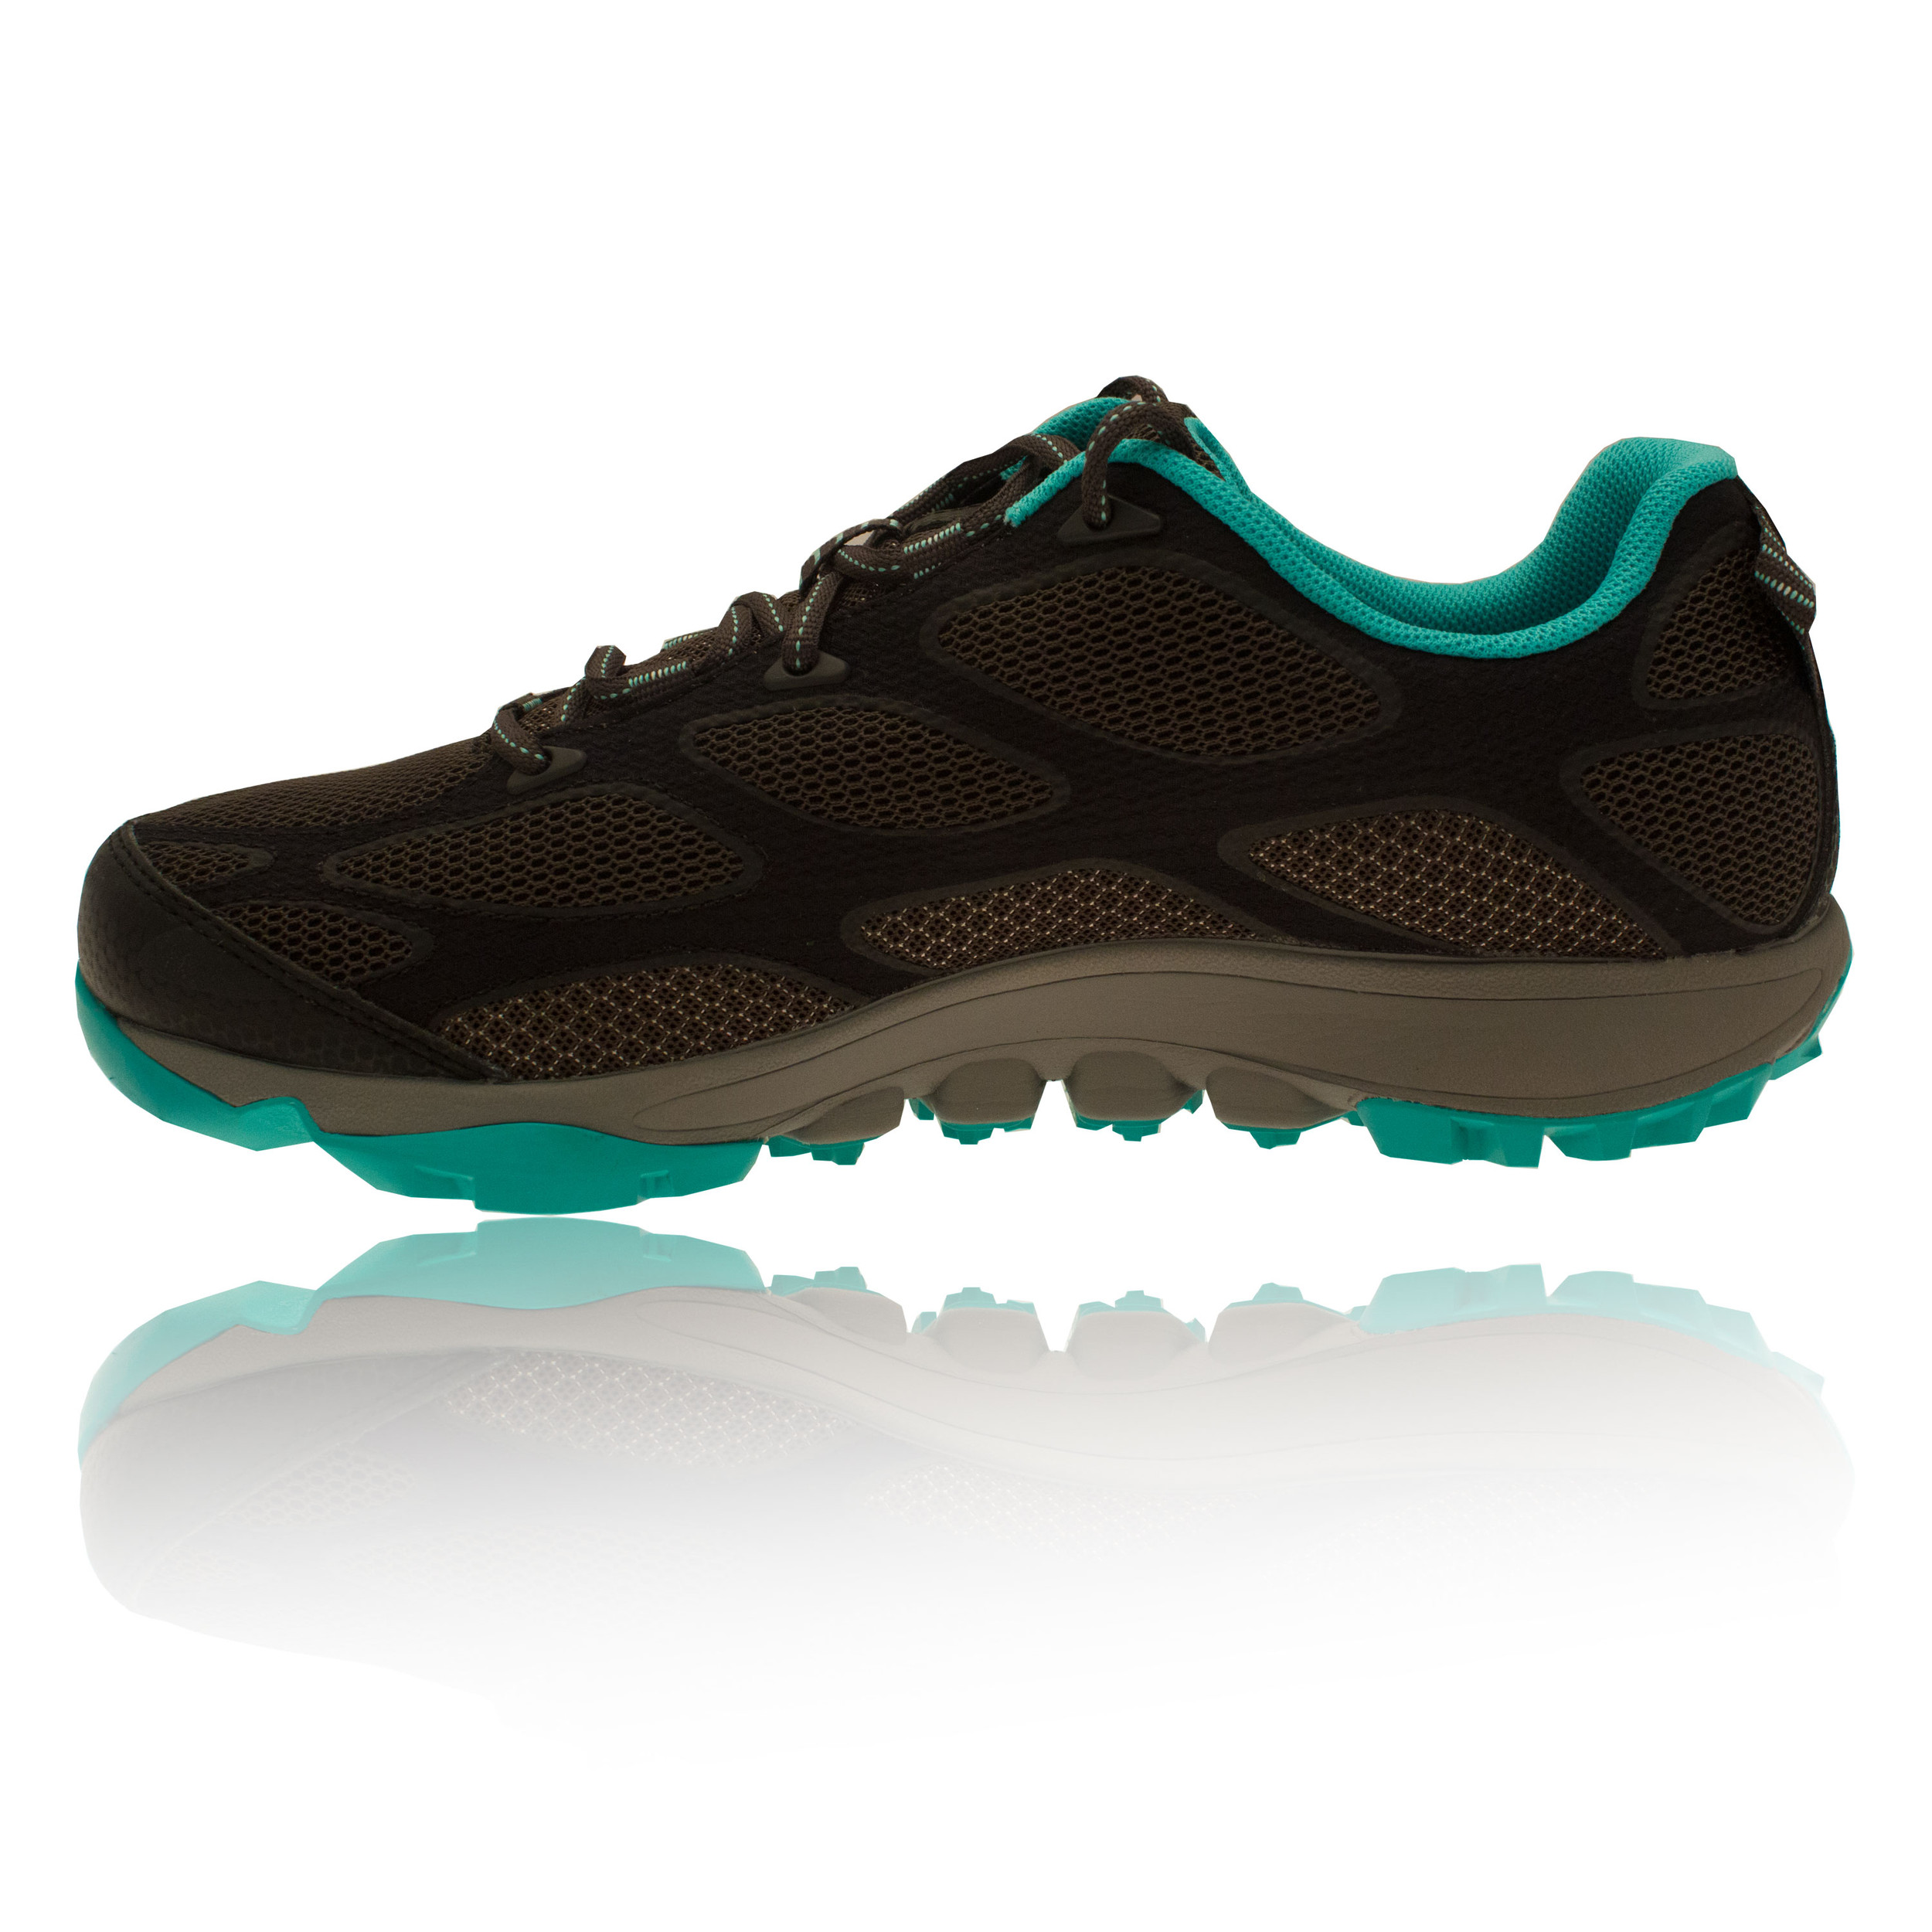 Columbia-Conspiracy-Iv-Outdry-Femmes-Vert-Noir-Trail-Baskets-Chaussures-Sneakers